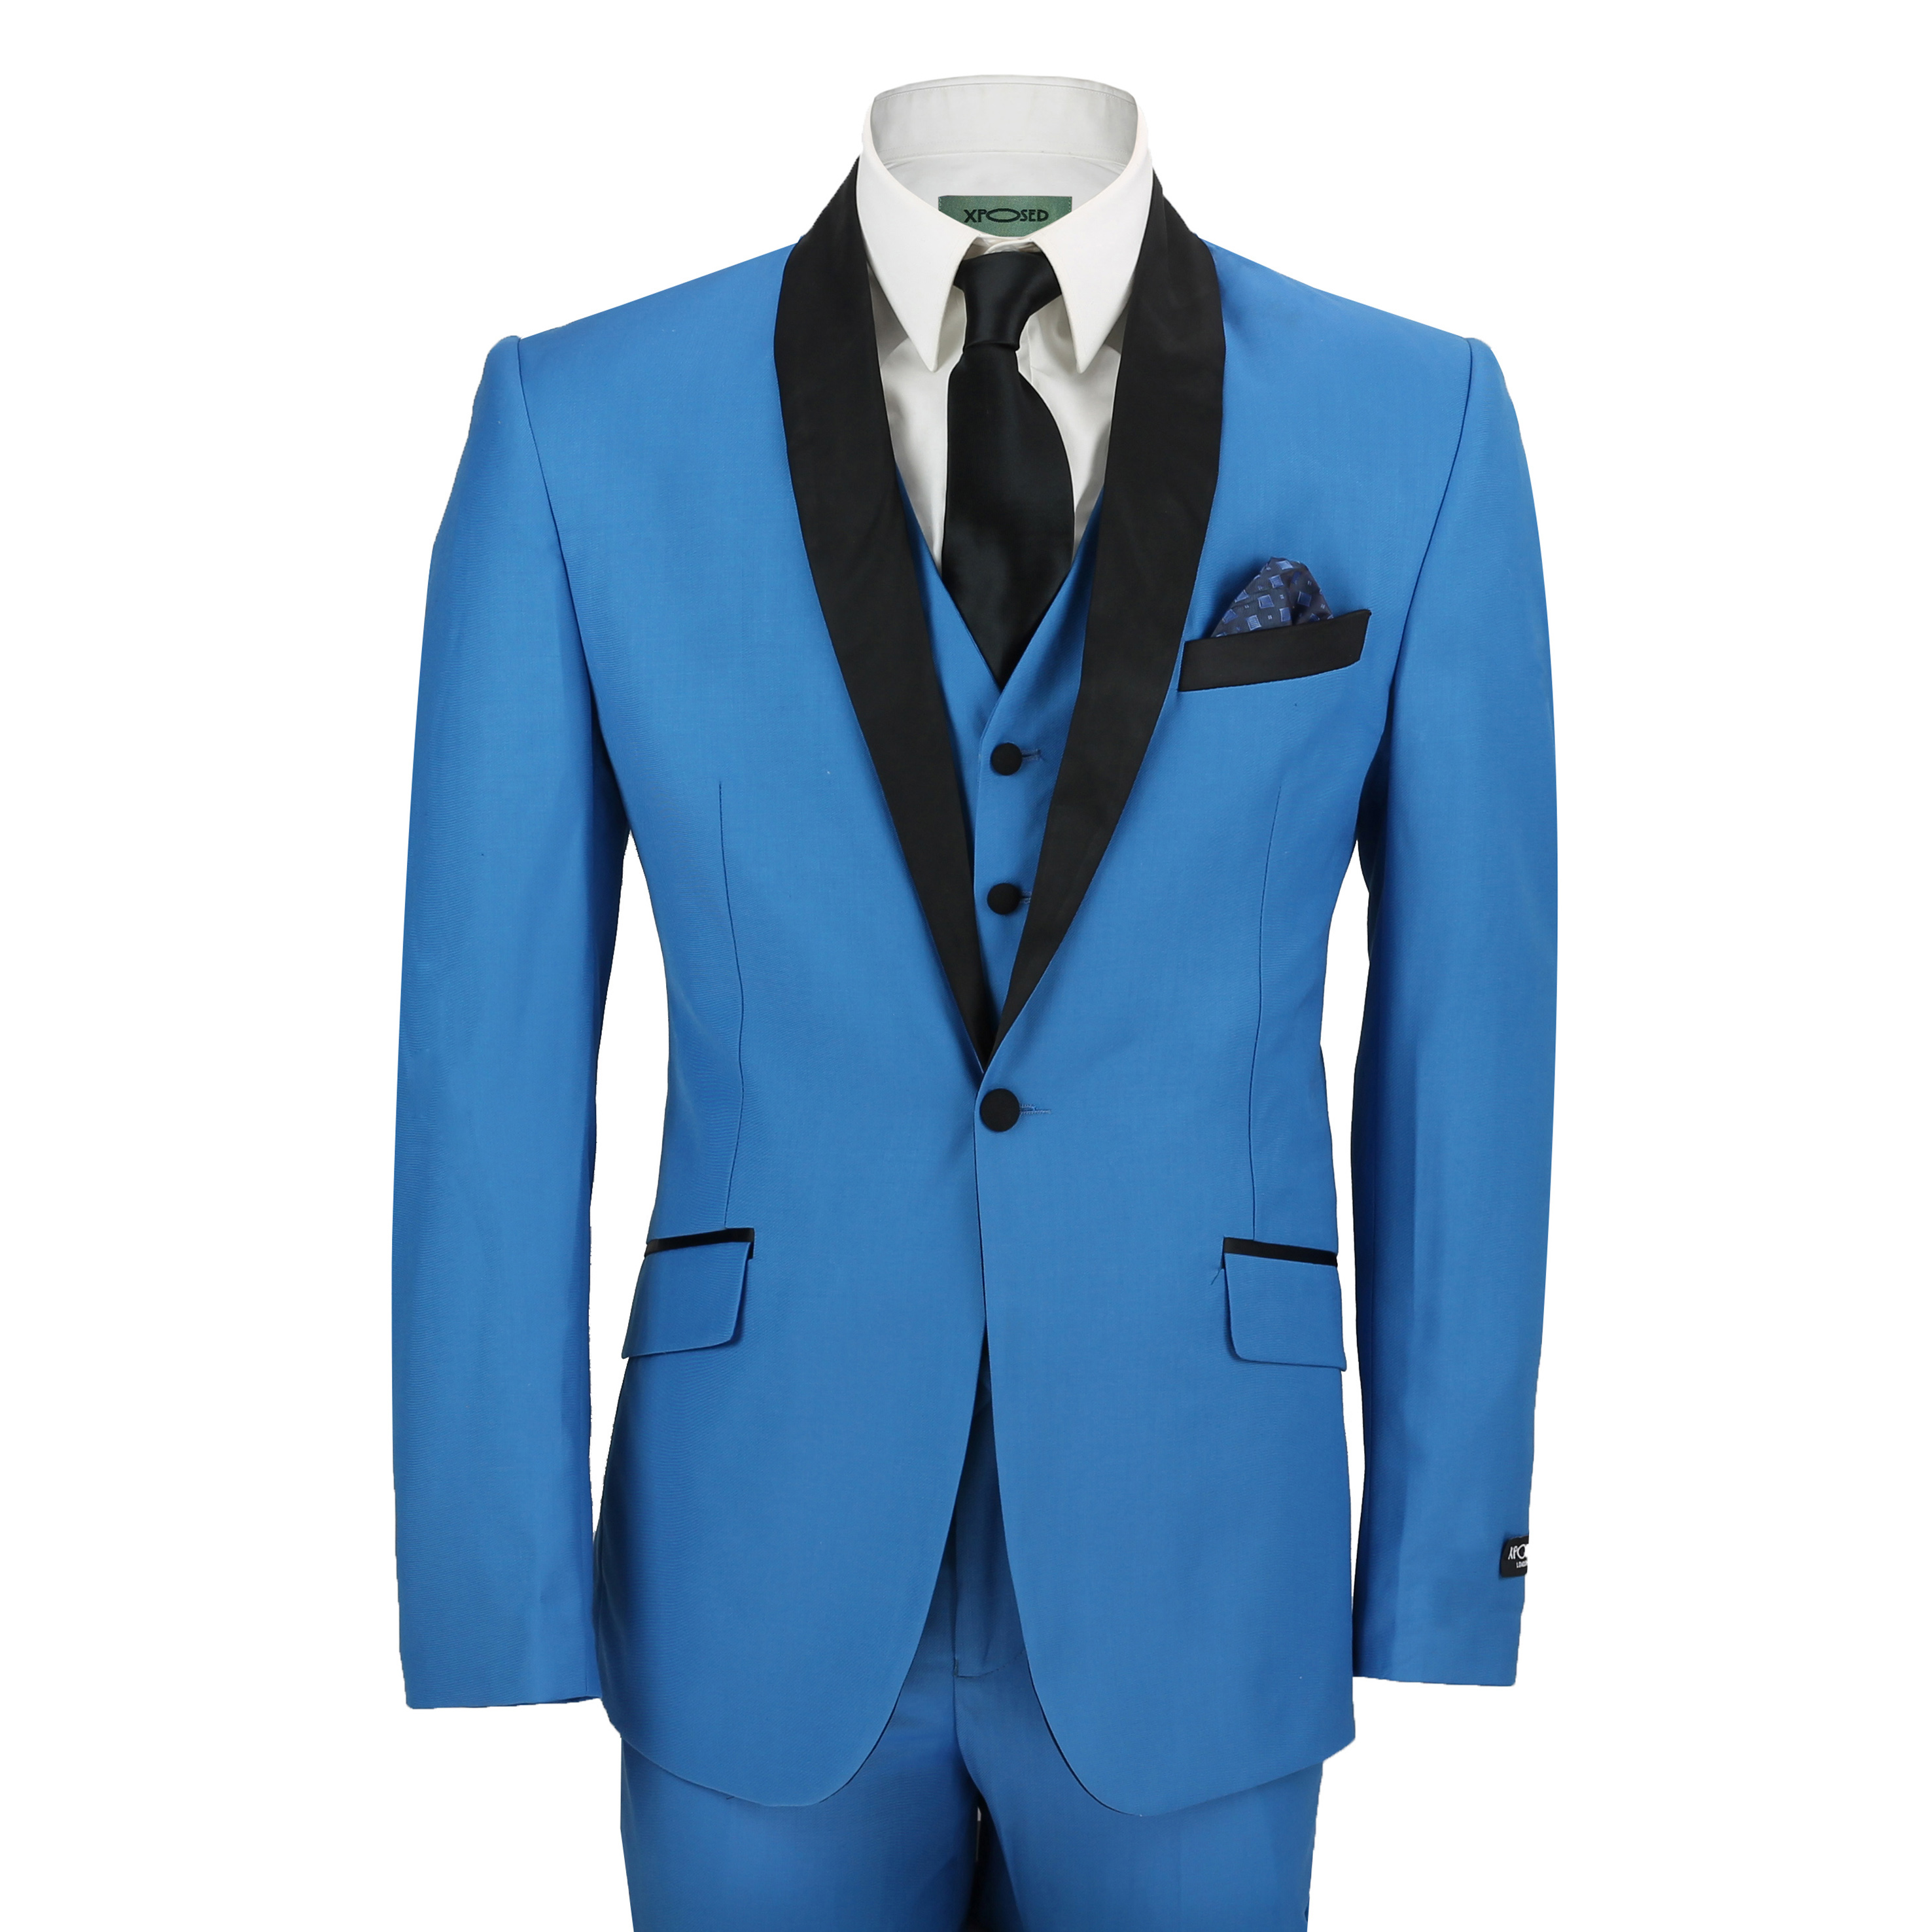 Mens 3 Piece Suit in Blue Shawl Lapels Vintage Tailored Fit Wedding ...